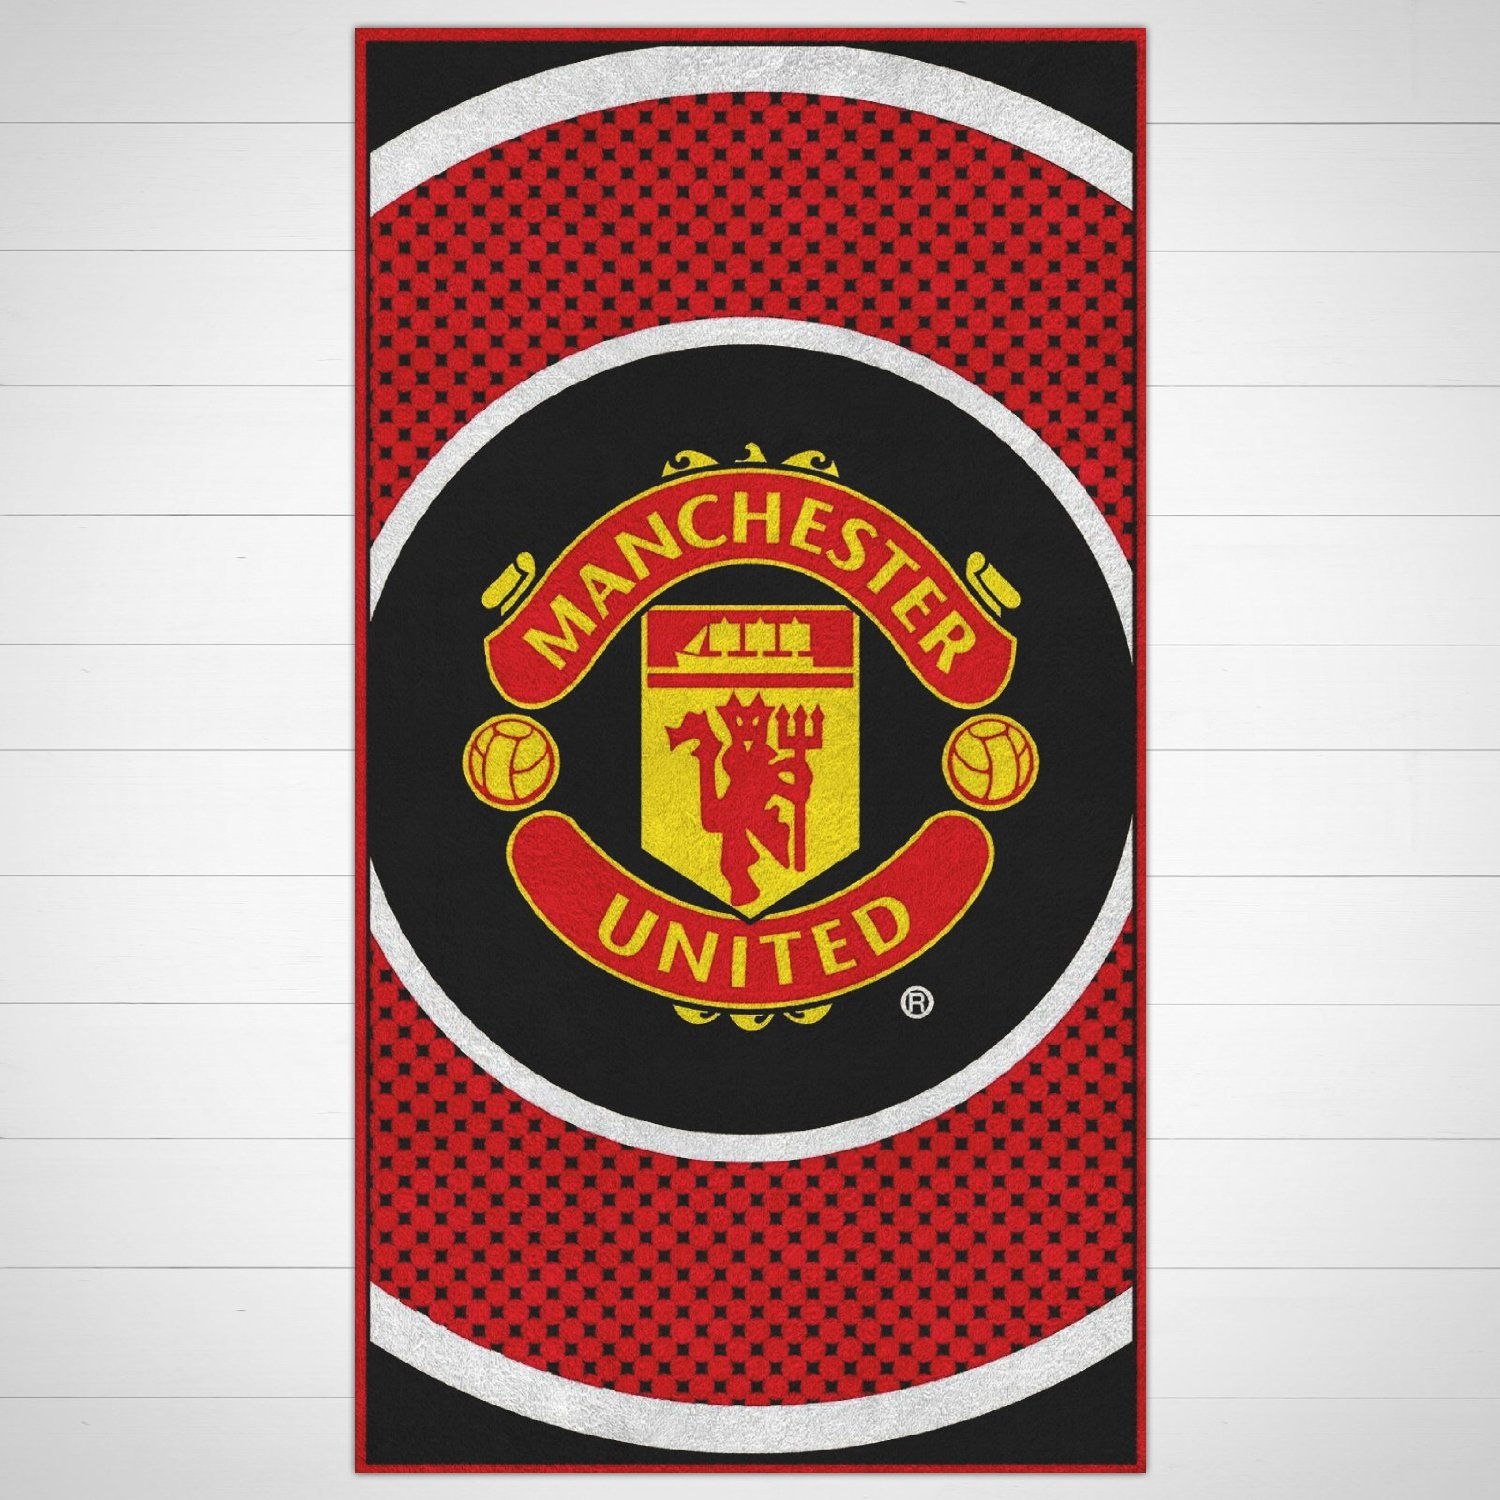 Manchester United F.C. Towel BE. large velour beach towel, approx 150cm x 75cm (59in x 29in), 100% cotton - official licensed product